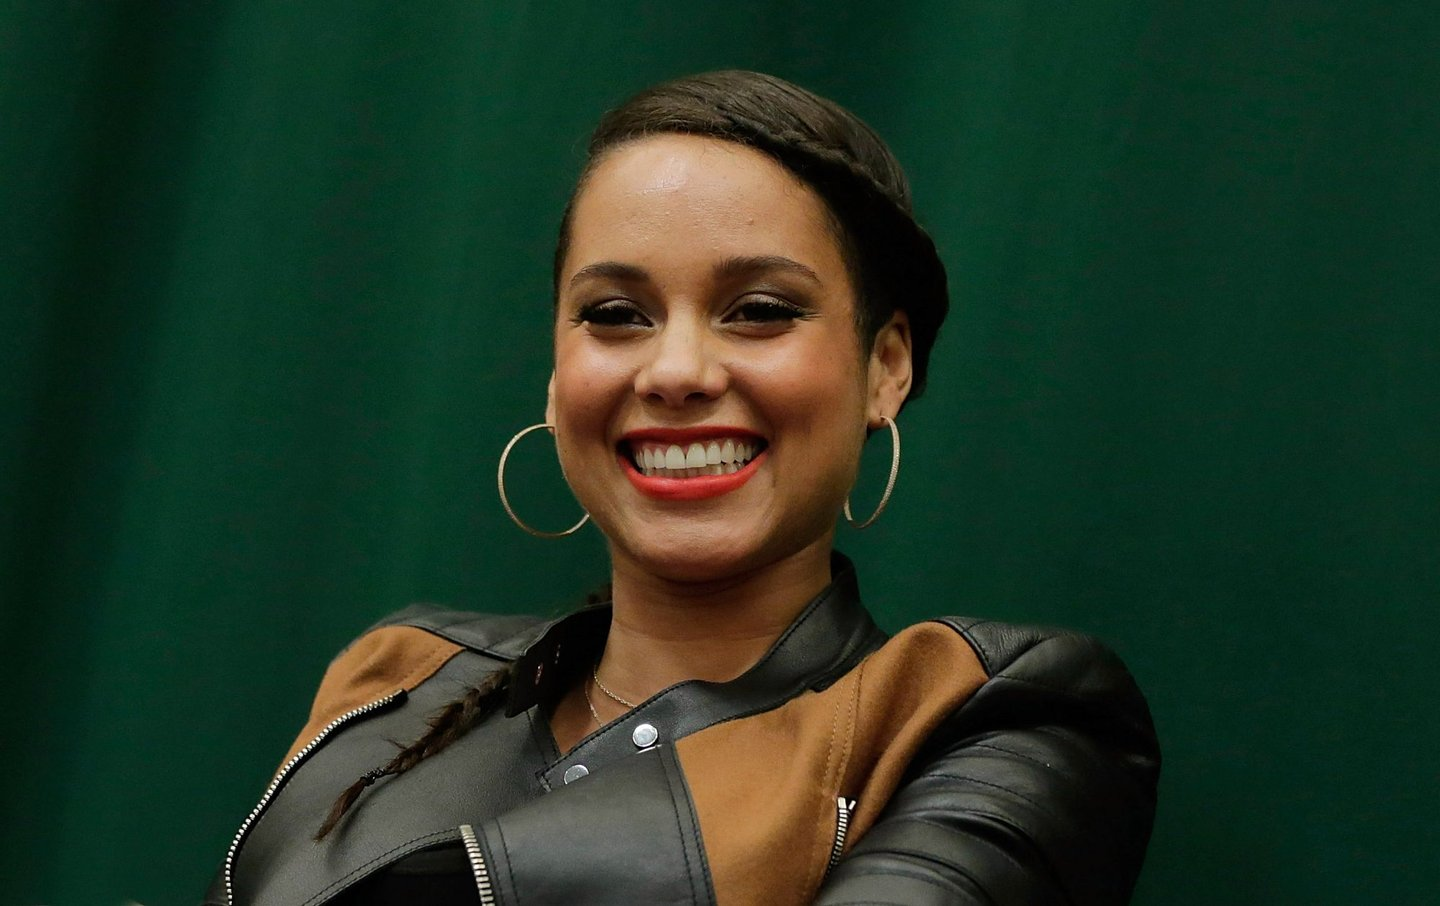 """NEW YORK, NY - NOVEMBER 12: (EXCLUSIVE COVERAGE) Alicia Keys' """"Blue Moon: From The Journals Of Mama Mae & LeeLee"""" Book Release at Barnes & Noble Tribeca on November 12, 2014 in New York City. (Photo by John Lamparski/Getty Images)"""